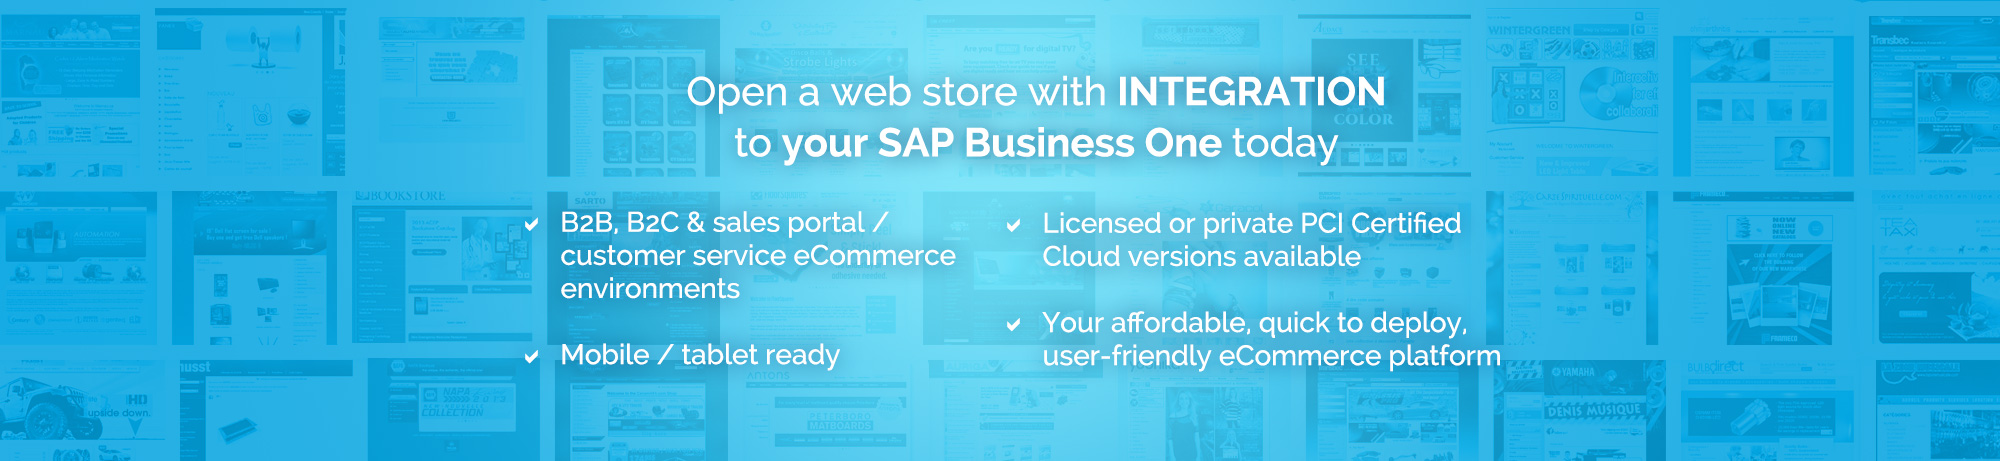 Open a web store with integration to SAP Business One